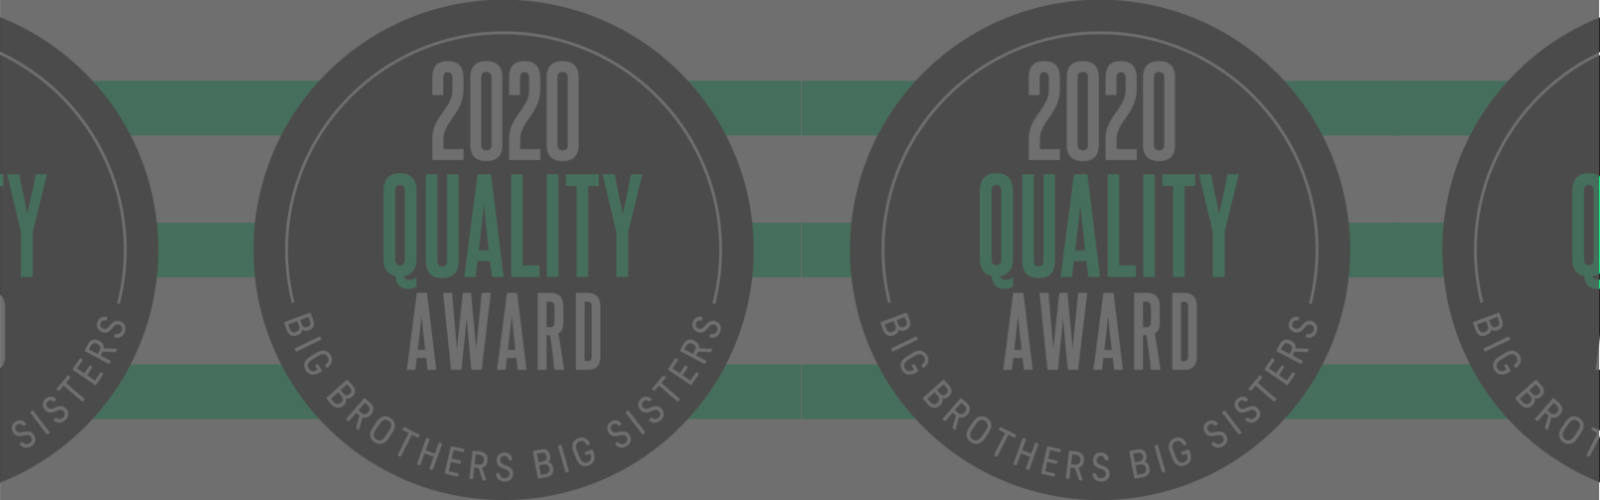 BBBS of Tampa Bay Receives National Quality Award 2020